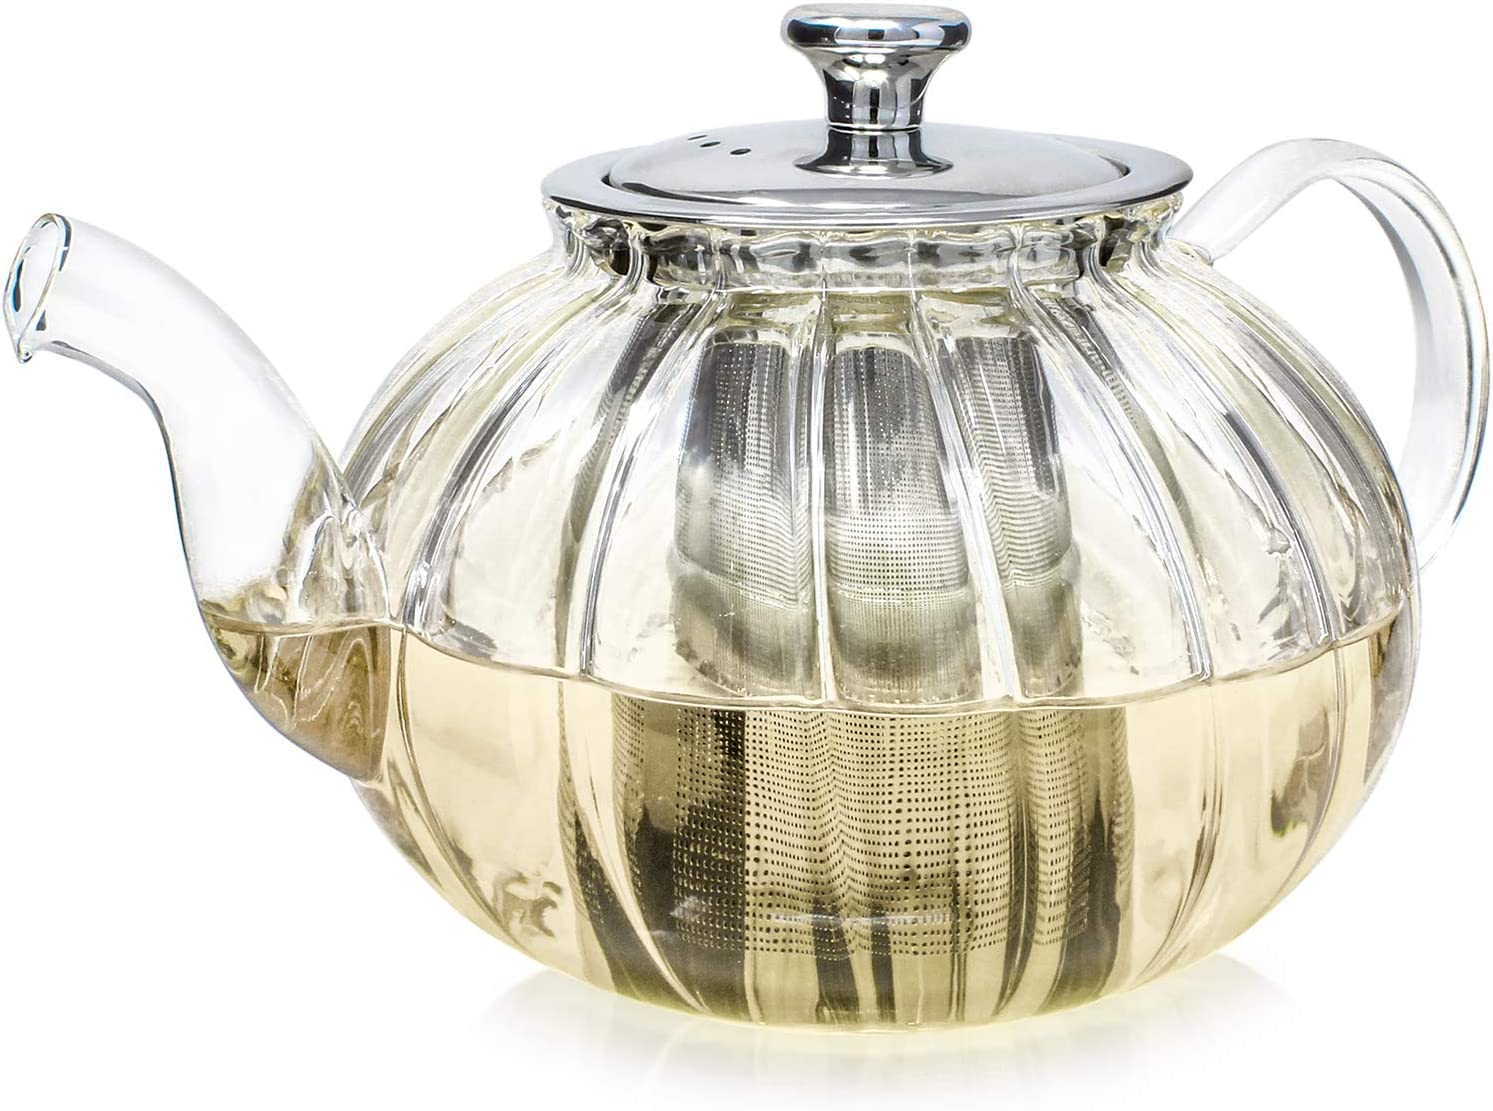 Teabloom Vienna Glass Teapot – Fine Borosilicate Glass – Stovetop Safe Kettle – 30 oz. / 900 ml (2-3 Cups) – Tea for Two – Removable Stainless Infuser – Perfect for Loose Leaf Tea